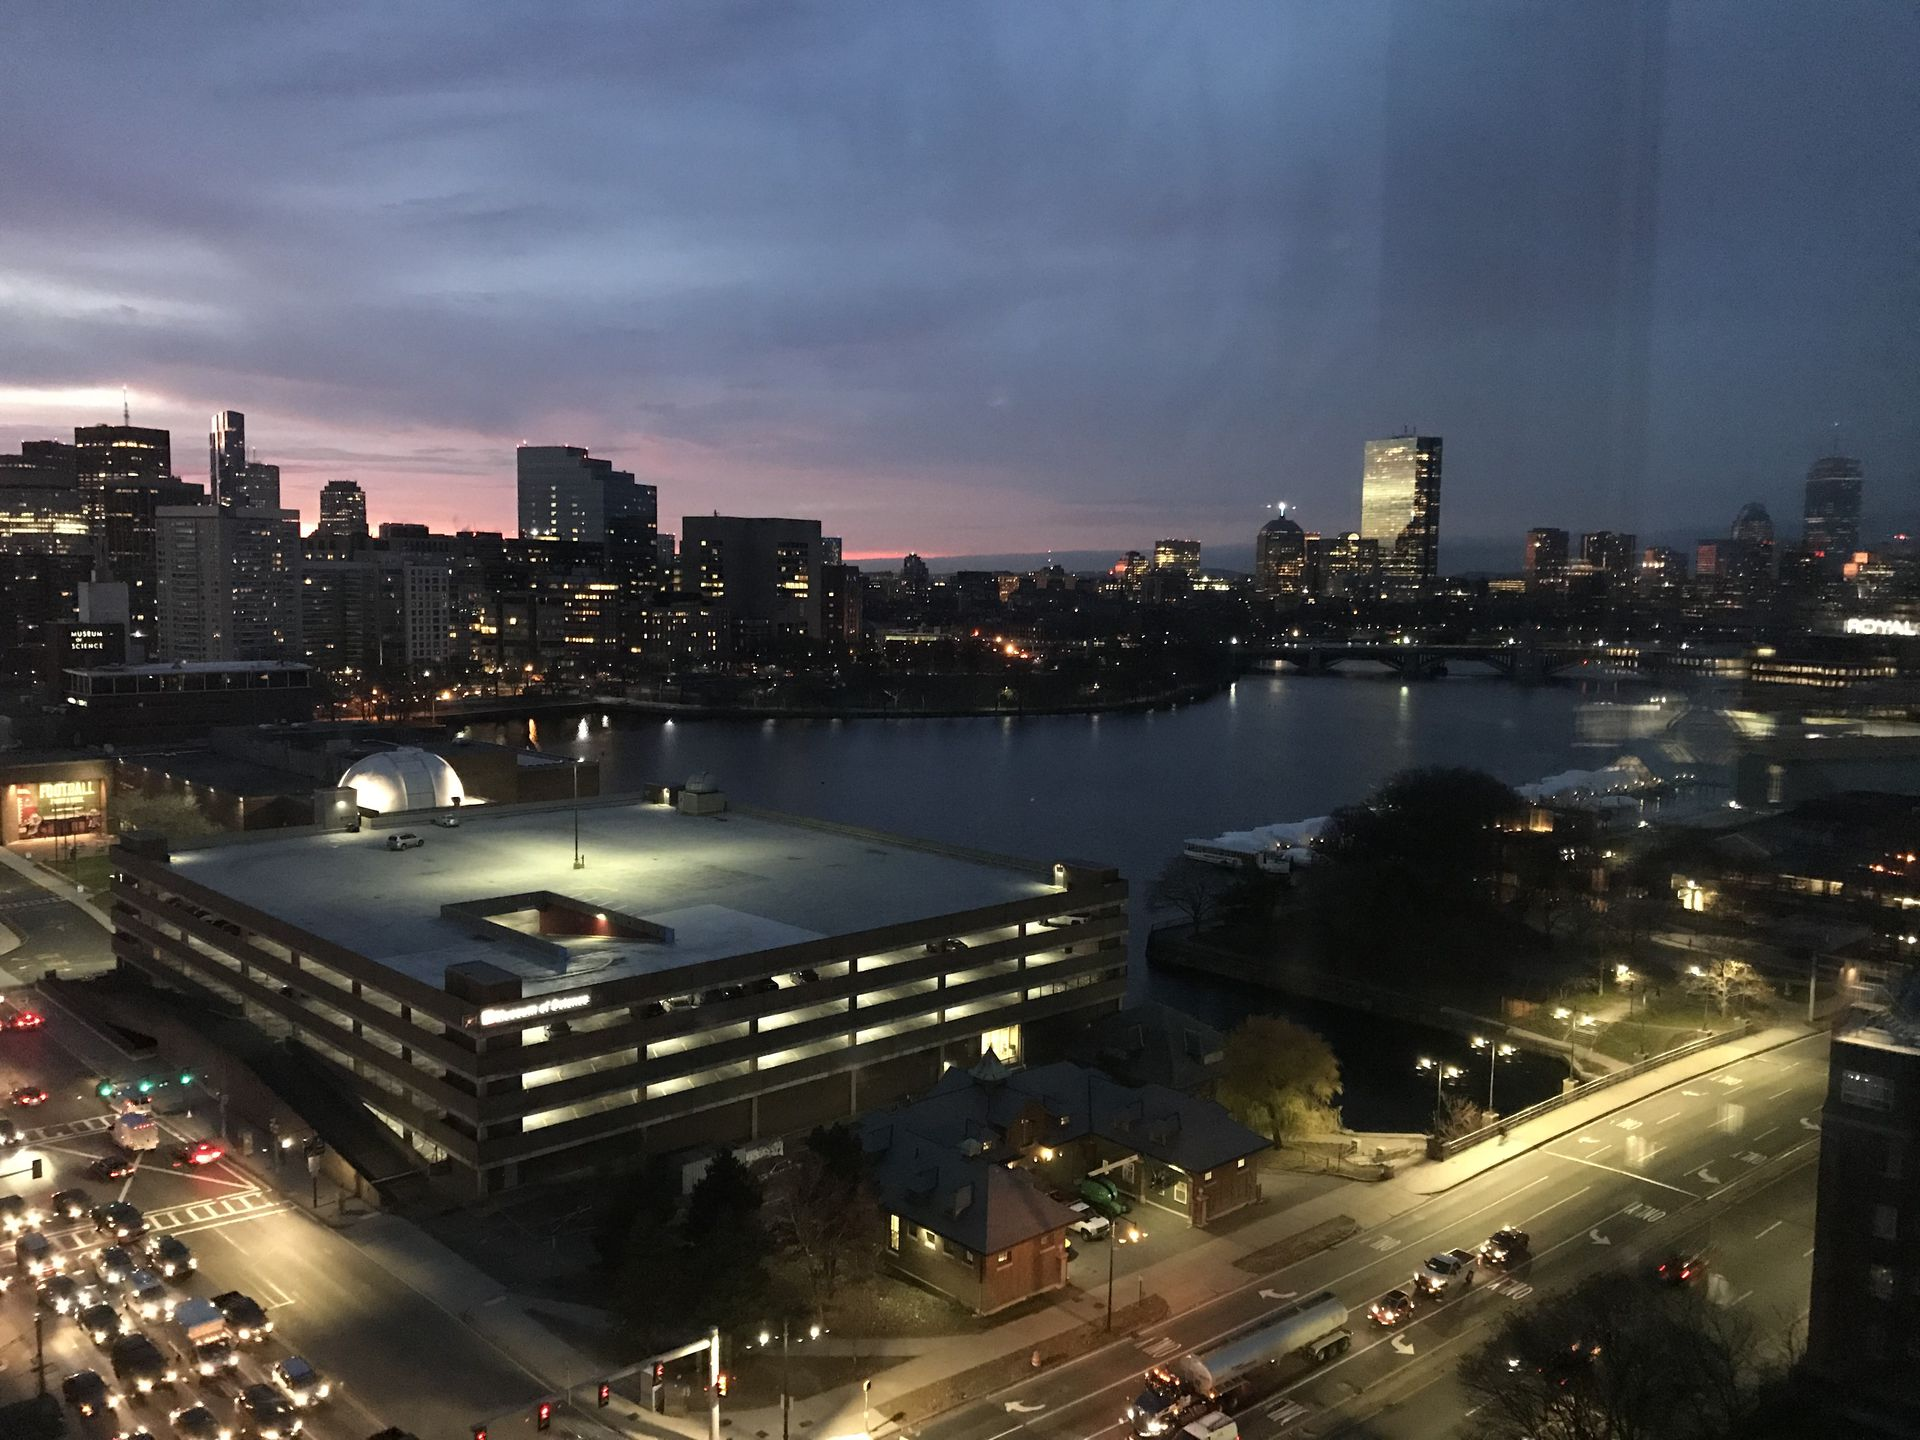 1 Bedroom Apartment With Gorgeous View Of Charles River And Boston   Home  Exchange